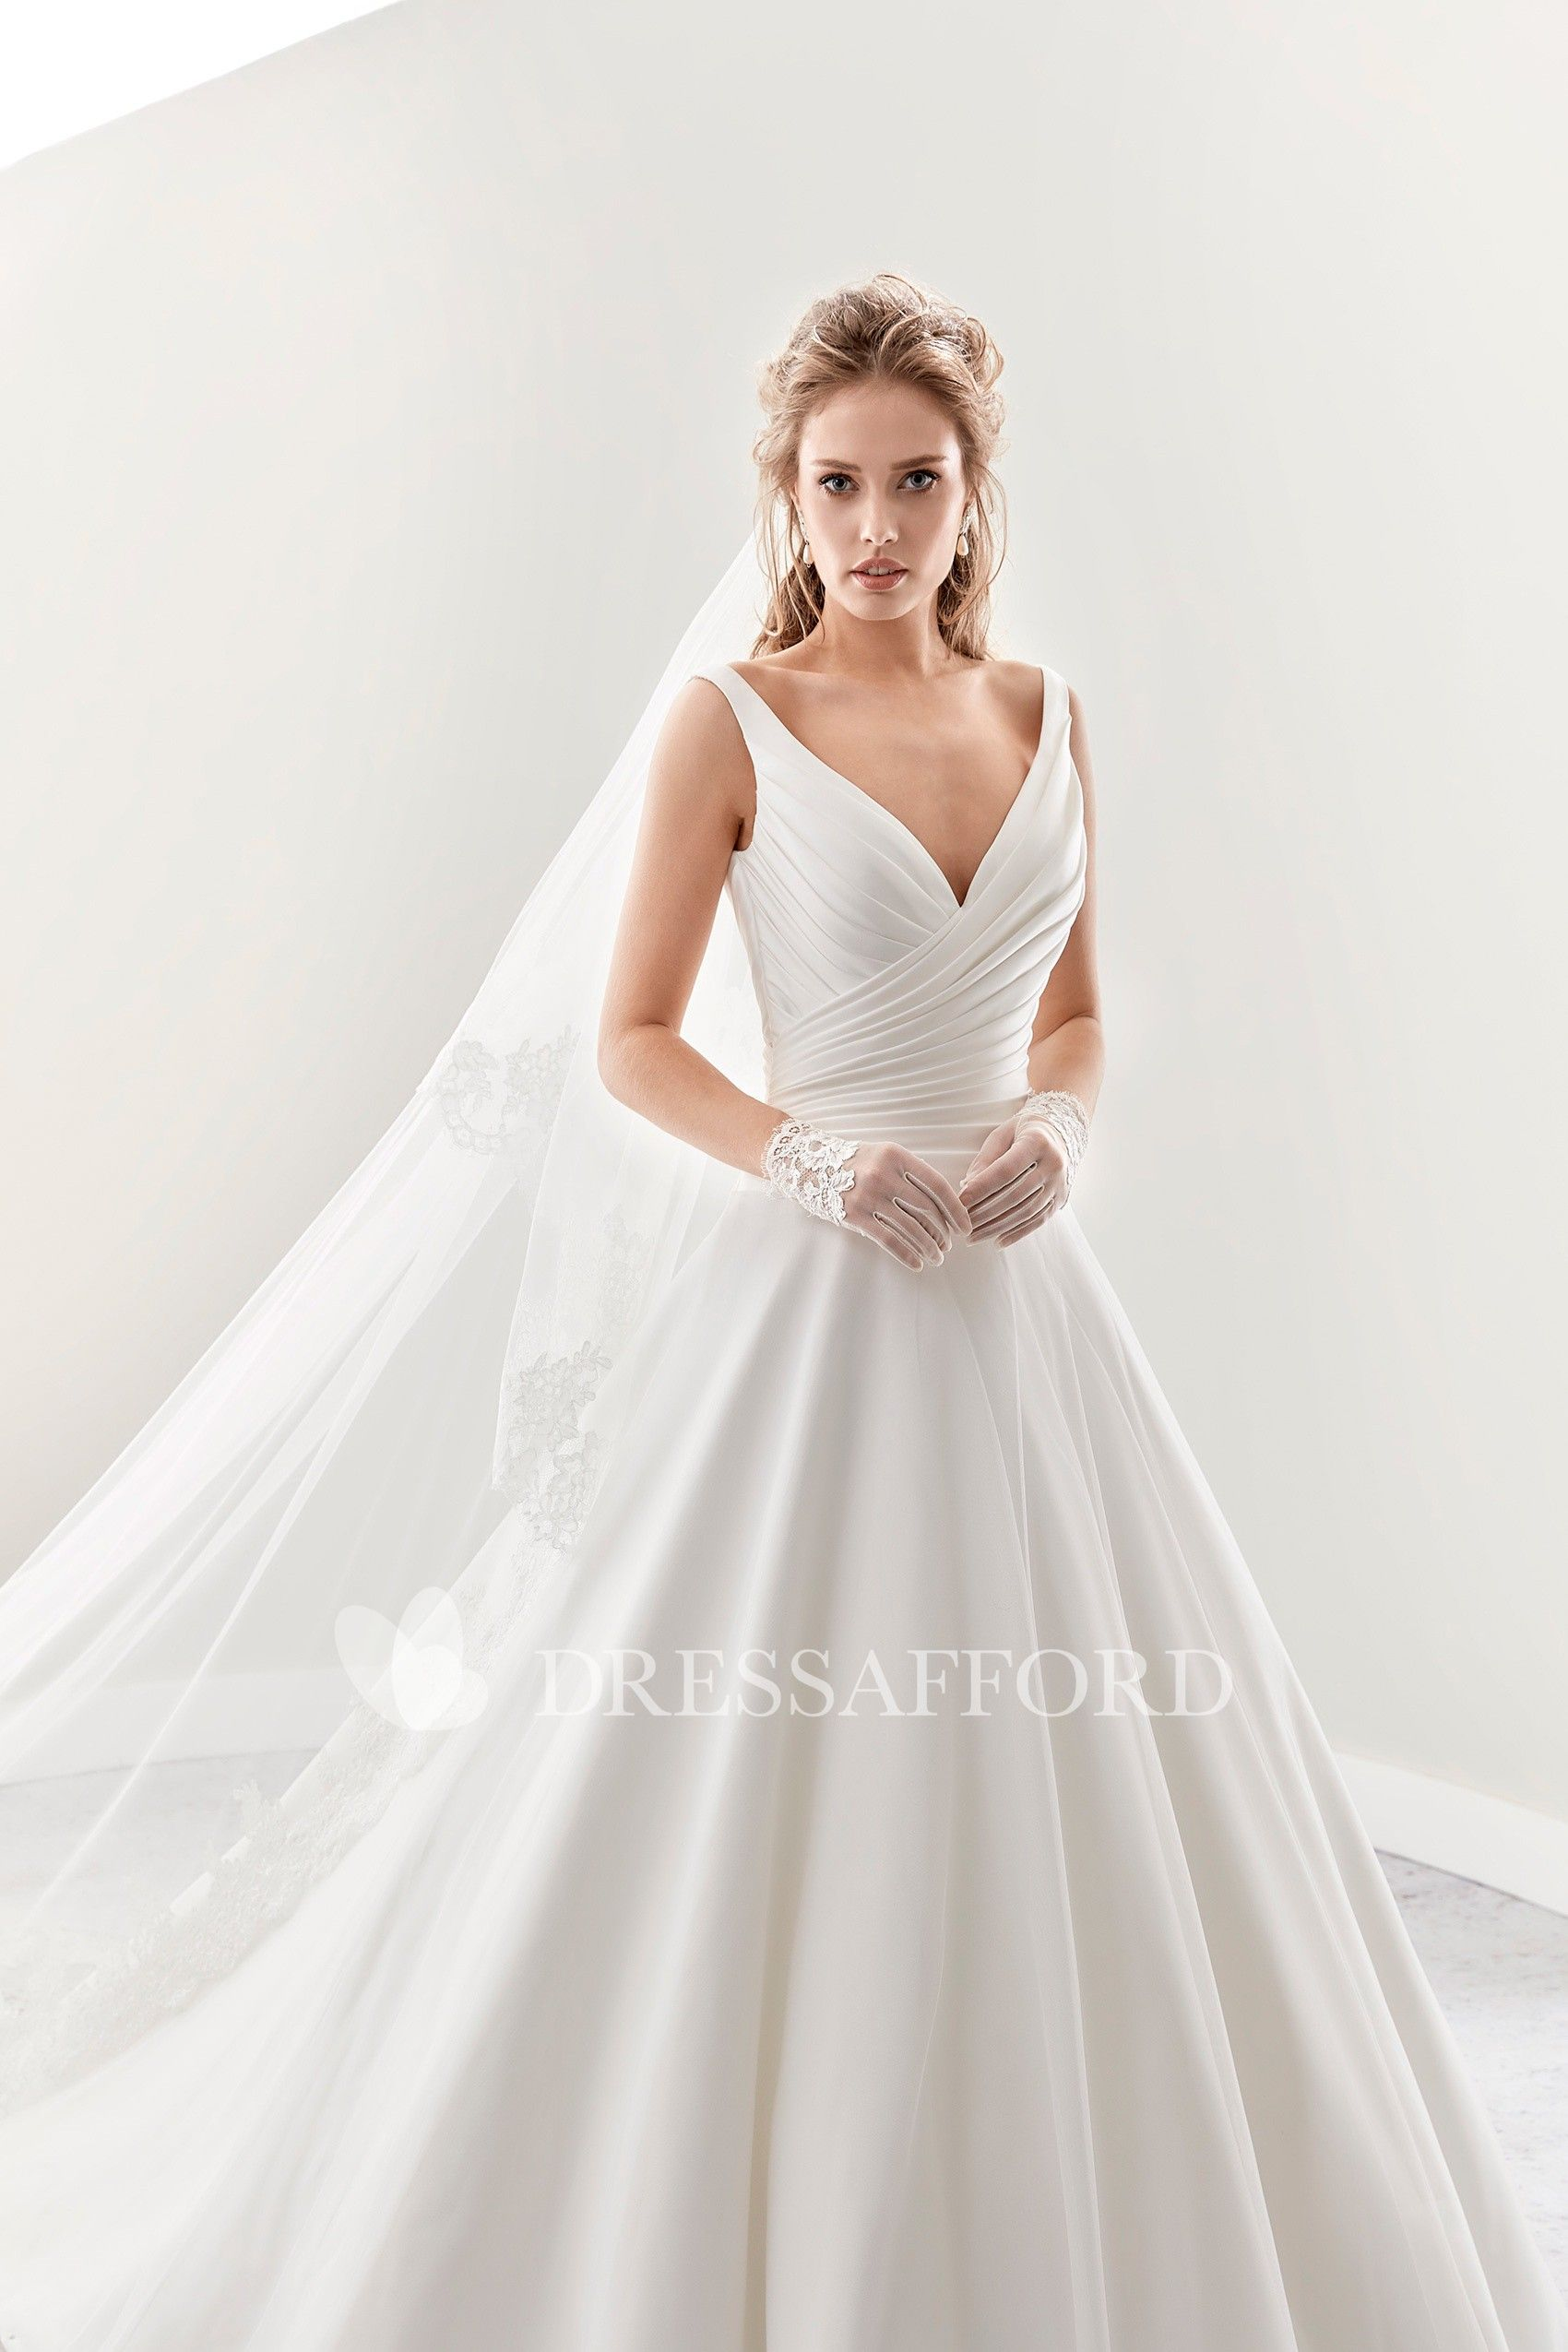 V Neck A Line Pleated Bridal Gown With Low V Back And Brush Train Dress Afford Perfect Wedding Dress Bridal Gowns Pleated Wedding Dresses [ 2550 x 1700 Pixel ]